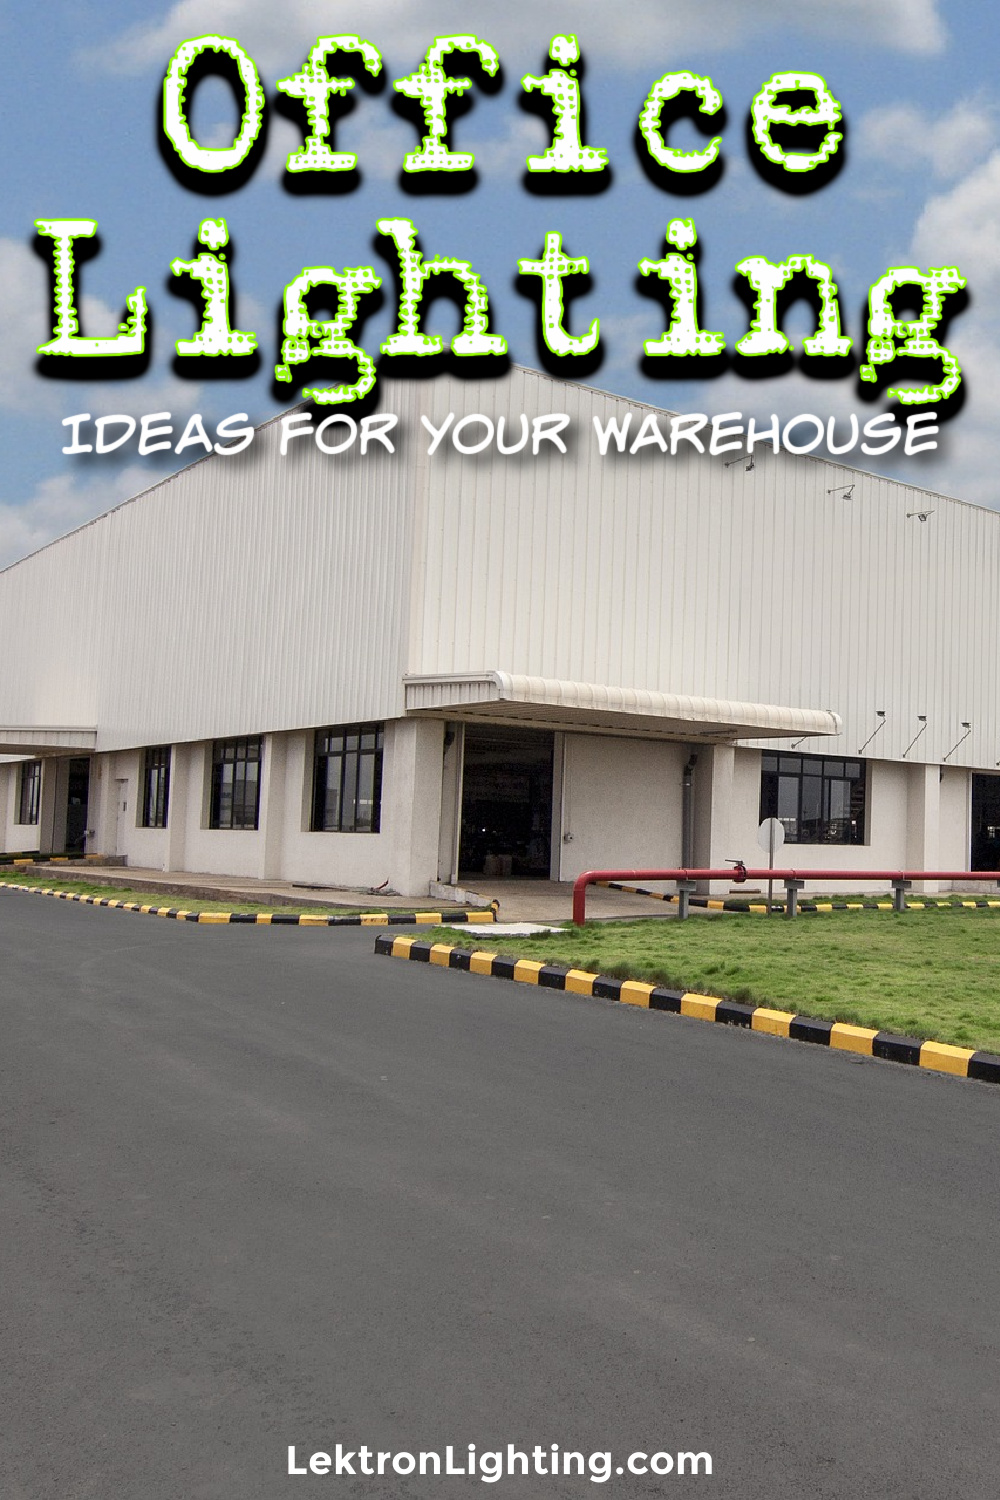 Office lighting ideas for your warehouse are just as important as lighting the warehouse itself, especially if there are savings involved.